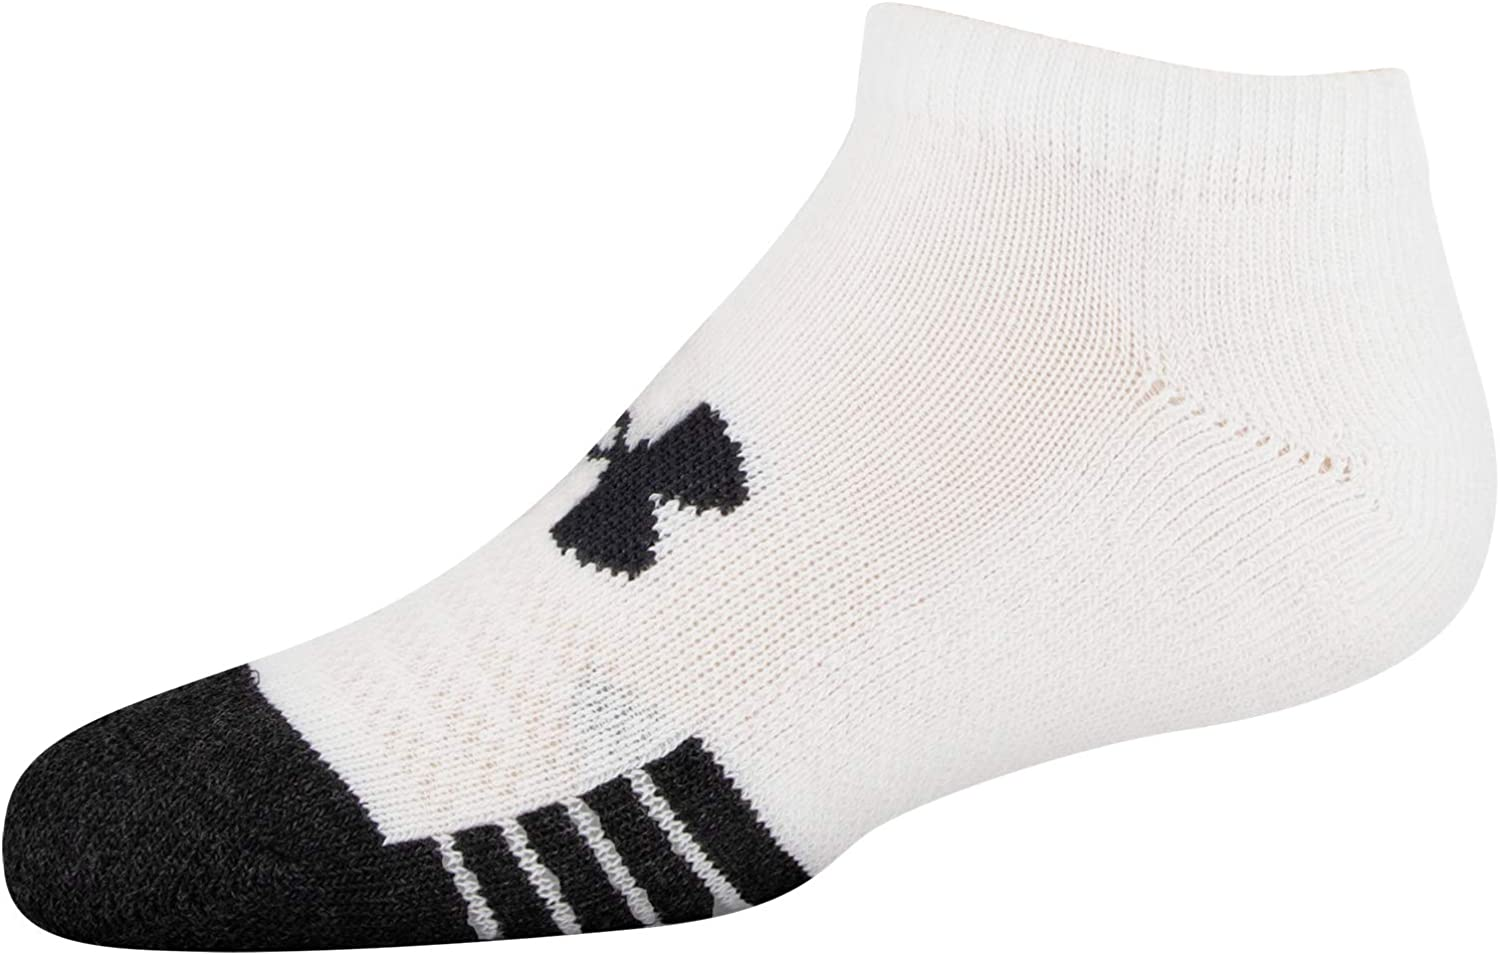 6-Pairs Under Armour Youth Performance Tech No Show Socks